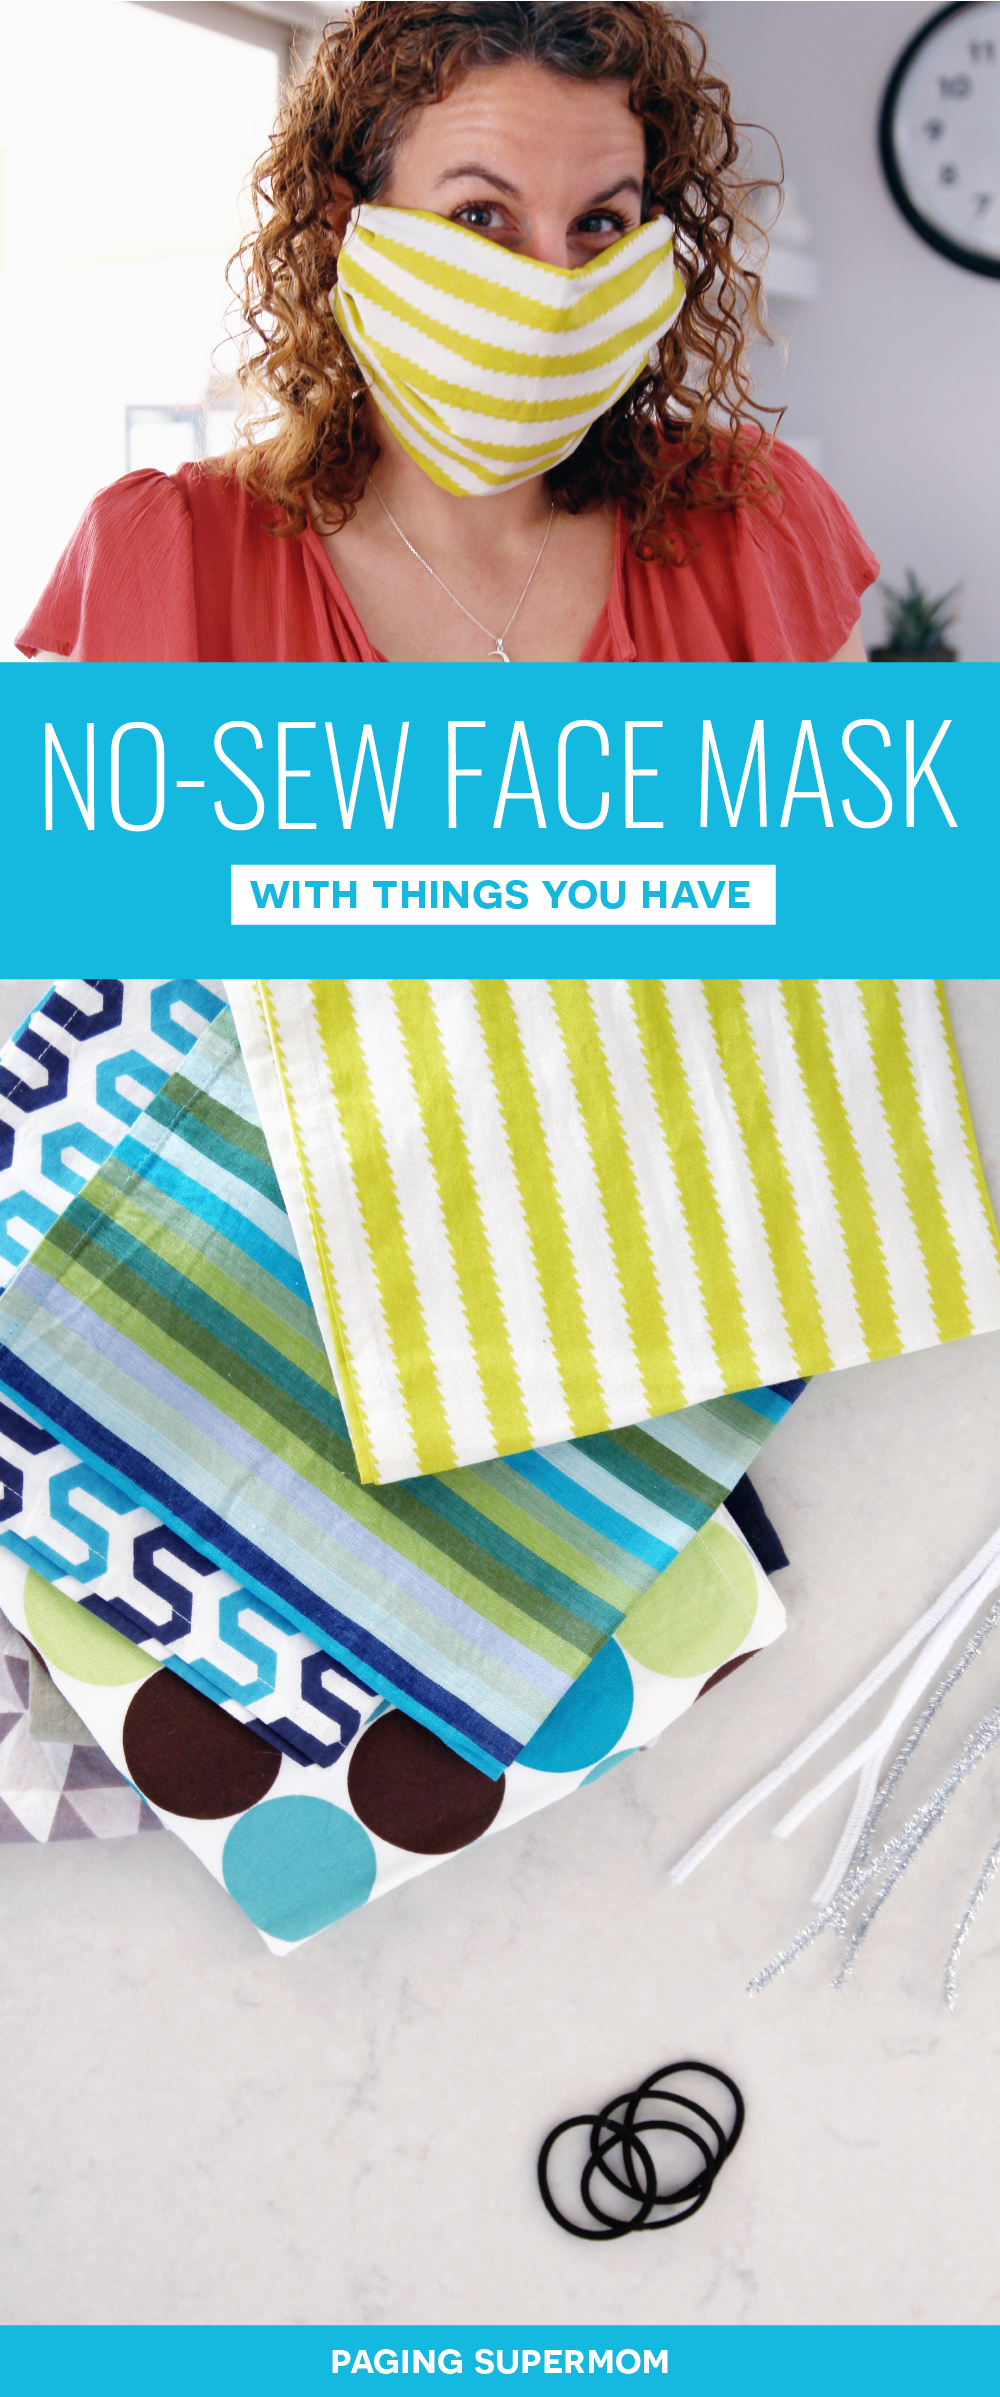 How to Make a Face Mask Tutorial. How to make a No-Sew Fabric Face Mask using things you already have at home